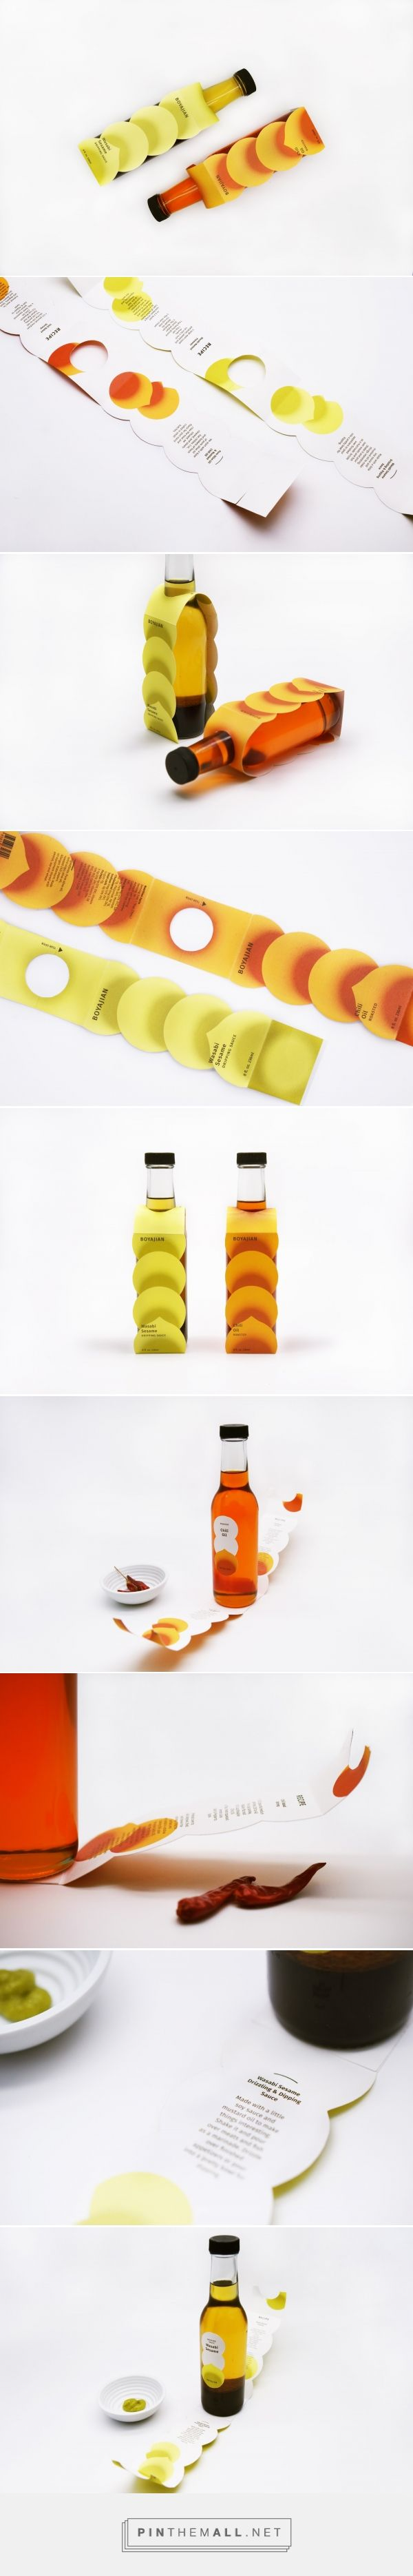 BOYAJIAN Olive Oil - Packaging of the World - Creative Package Design Gallery - http://www.packagingoftheworld.com/2017/11/boyajian-olive-oil.html